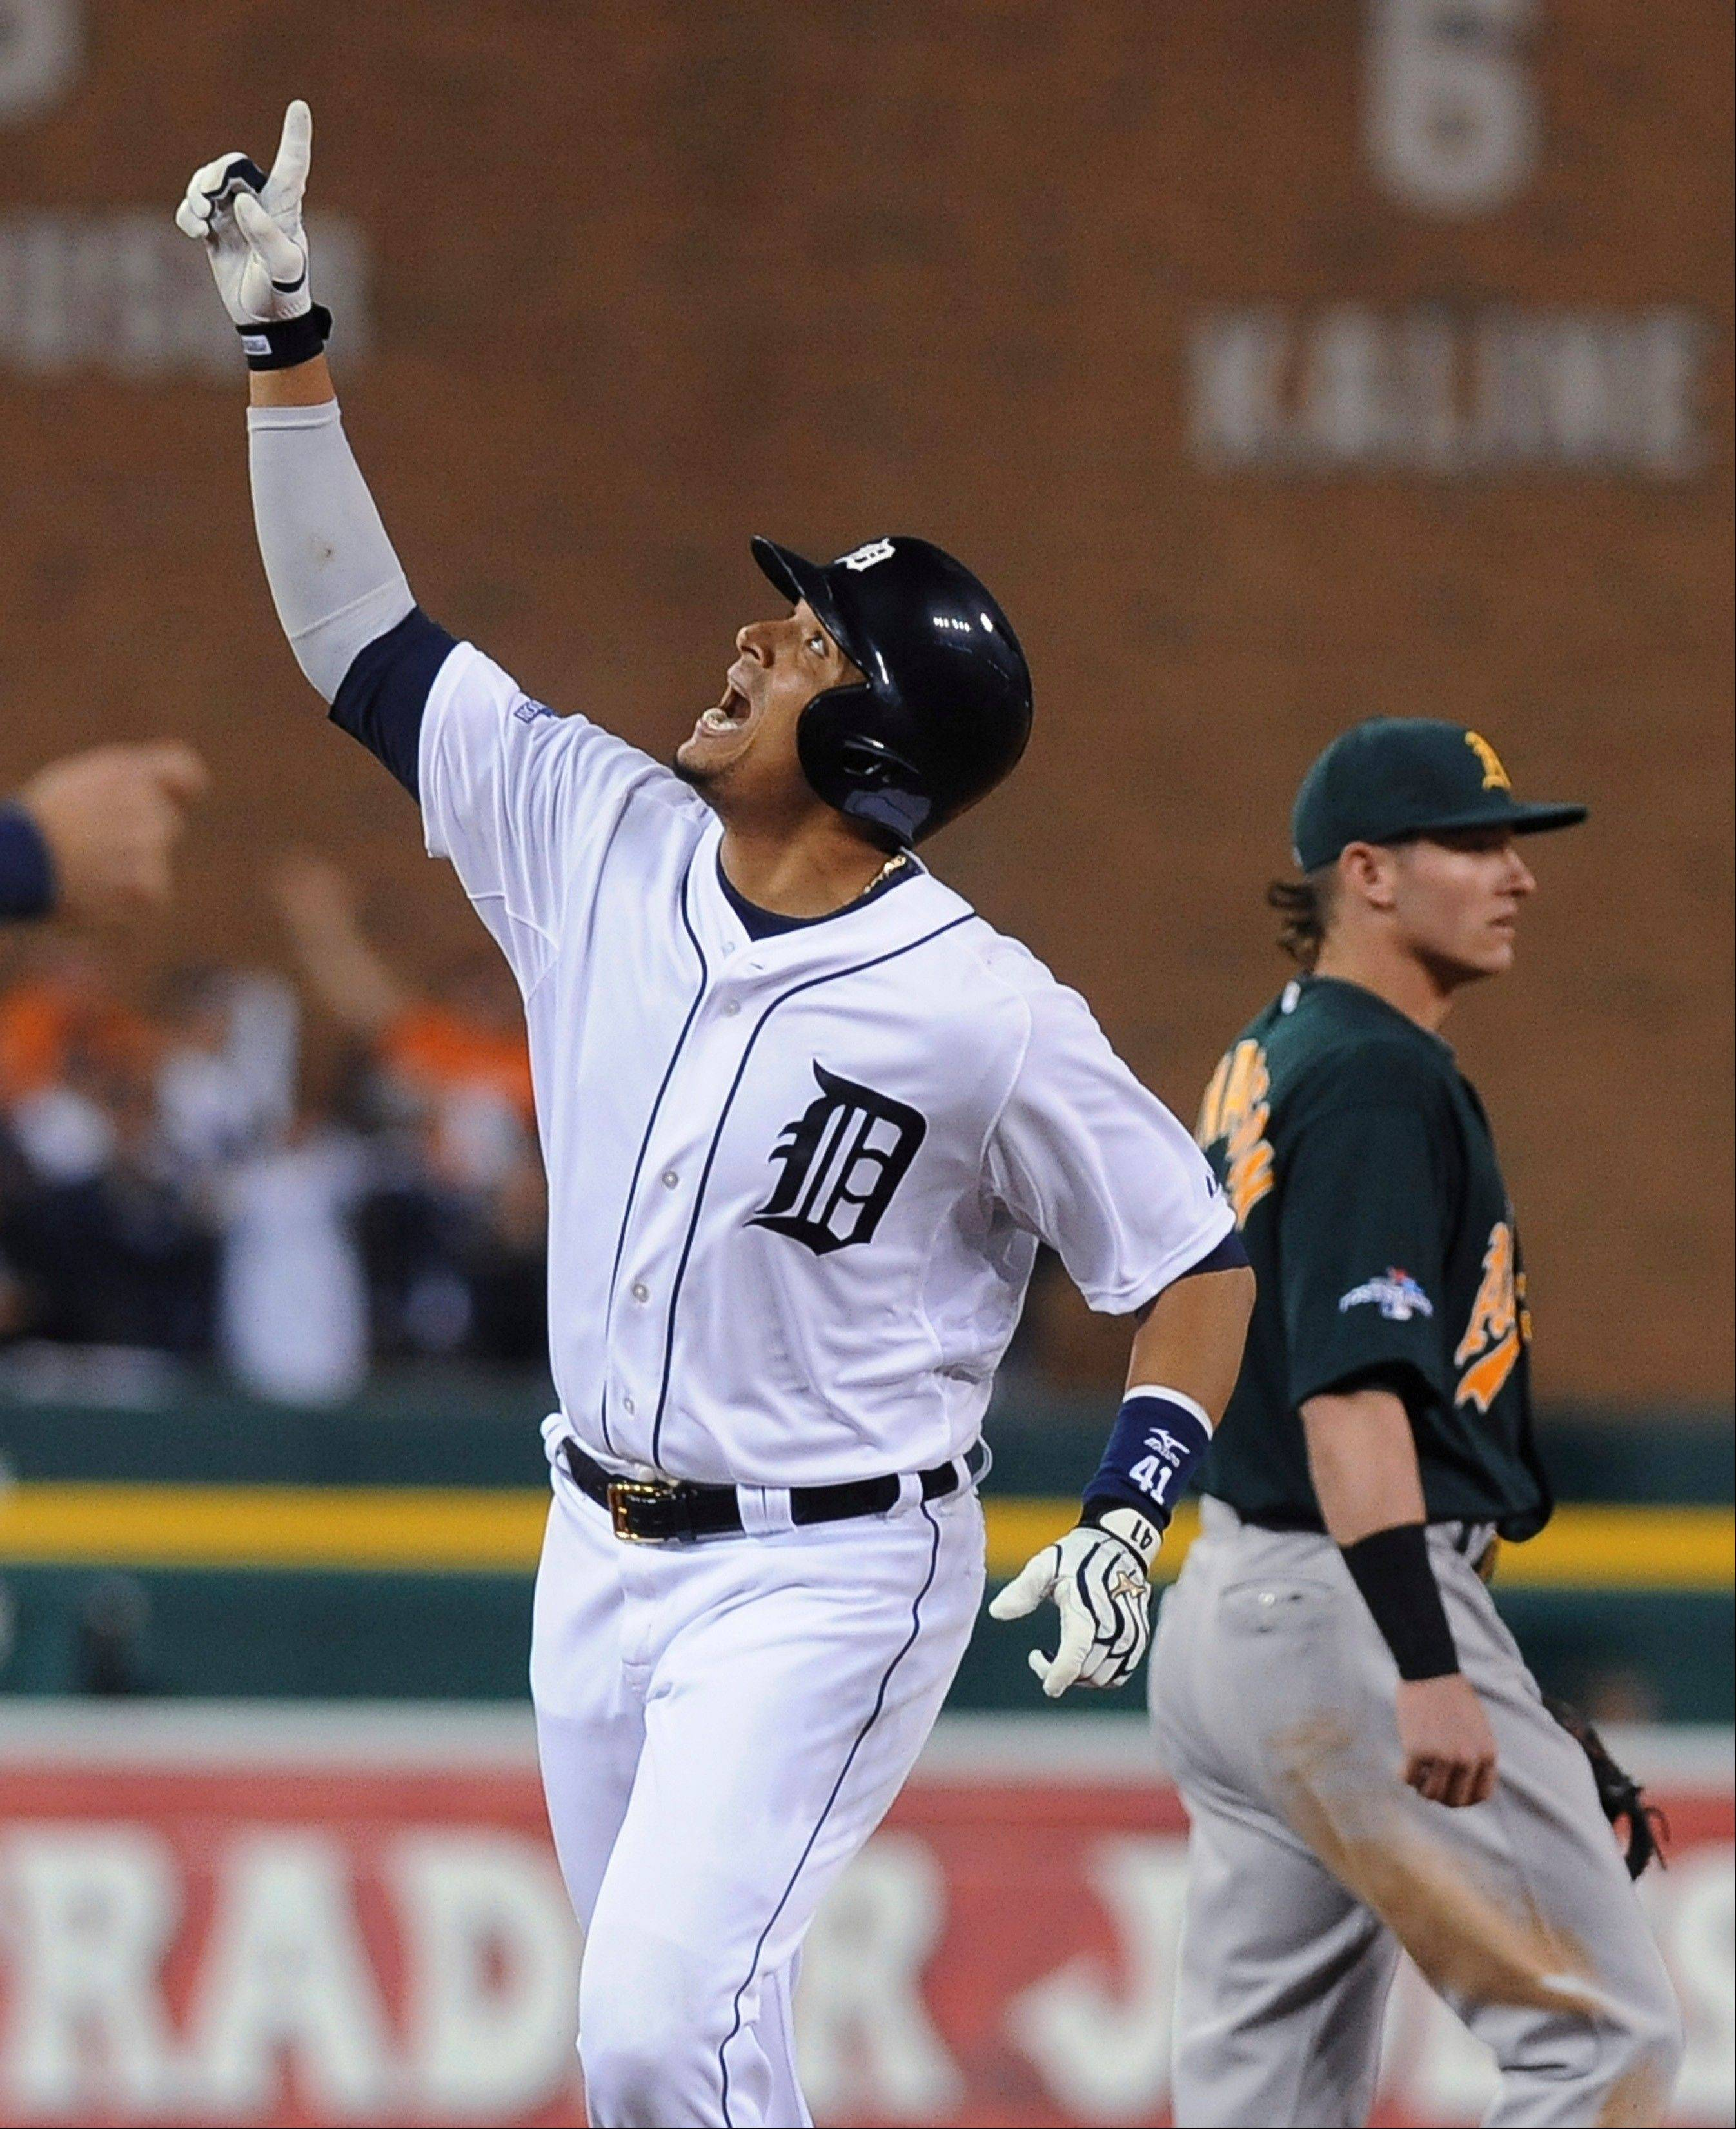 Tigers designated hitter Victor Martinez looks skyward after hitting a solo home run during the seventh inning of Game 4 Tuesday in Detroit.